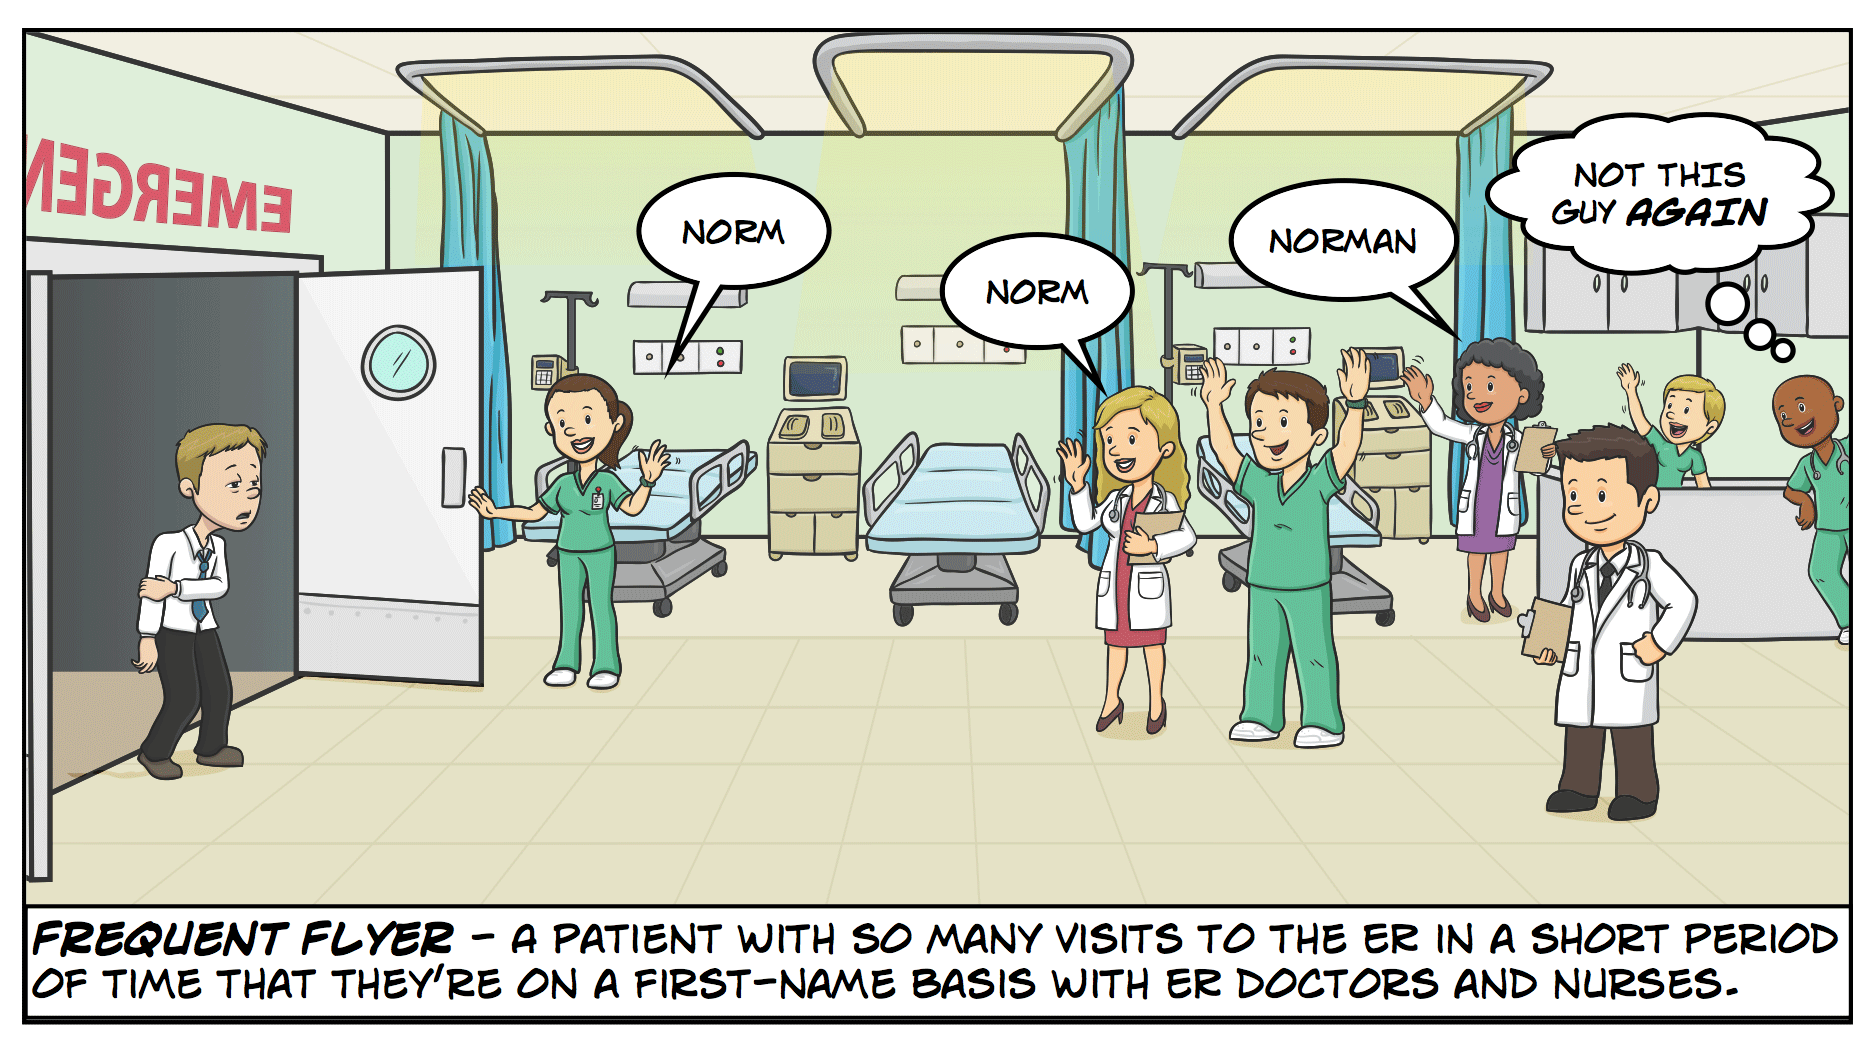 Frequent Flyer - A patient with so many visits to the ER in a short period of time that they're on a first-name basis with ER doctors and nurses.